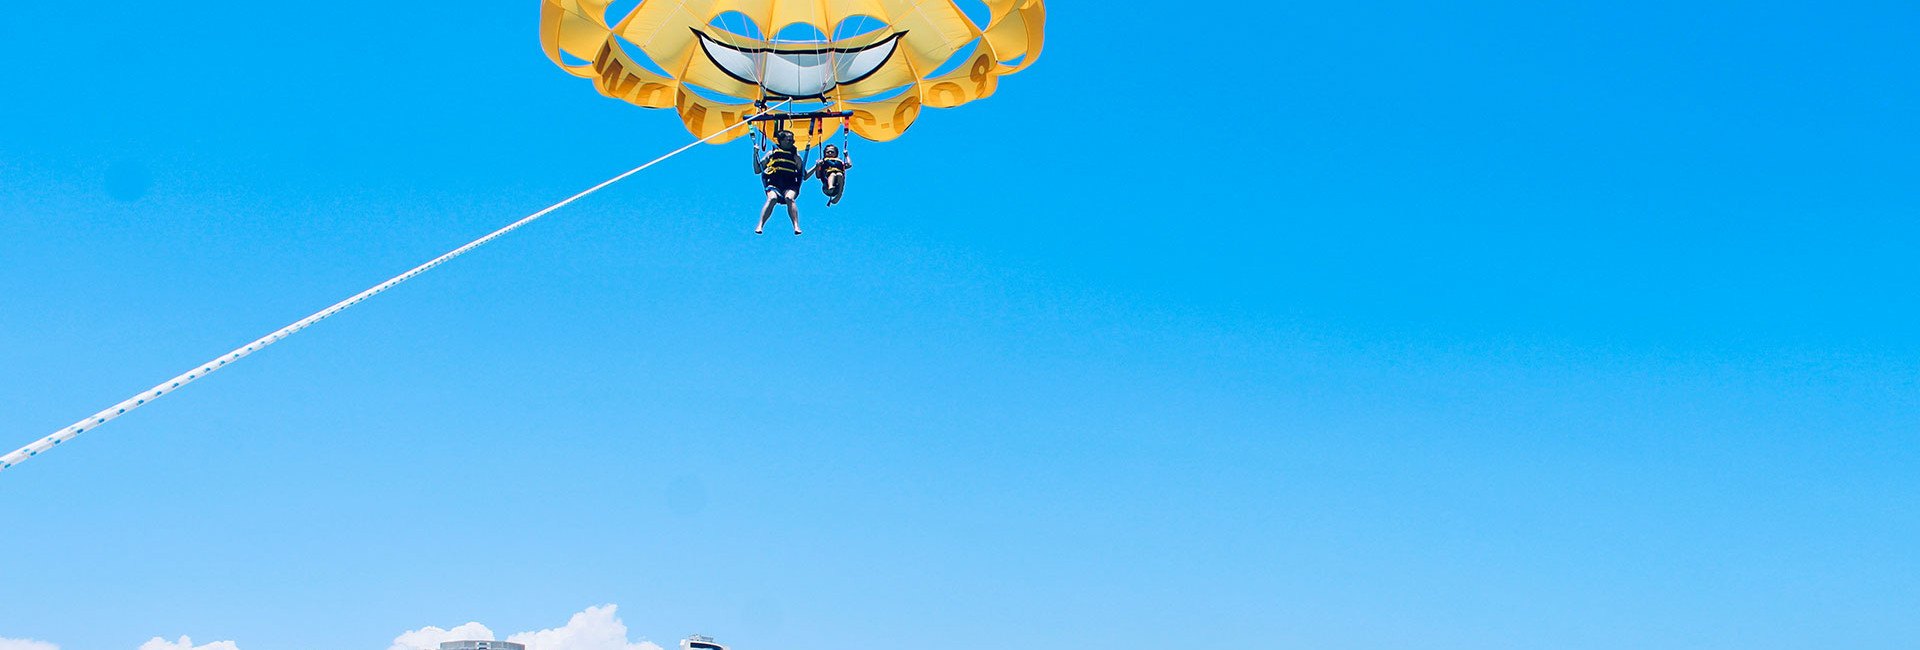 Yellow parasail